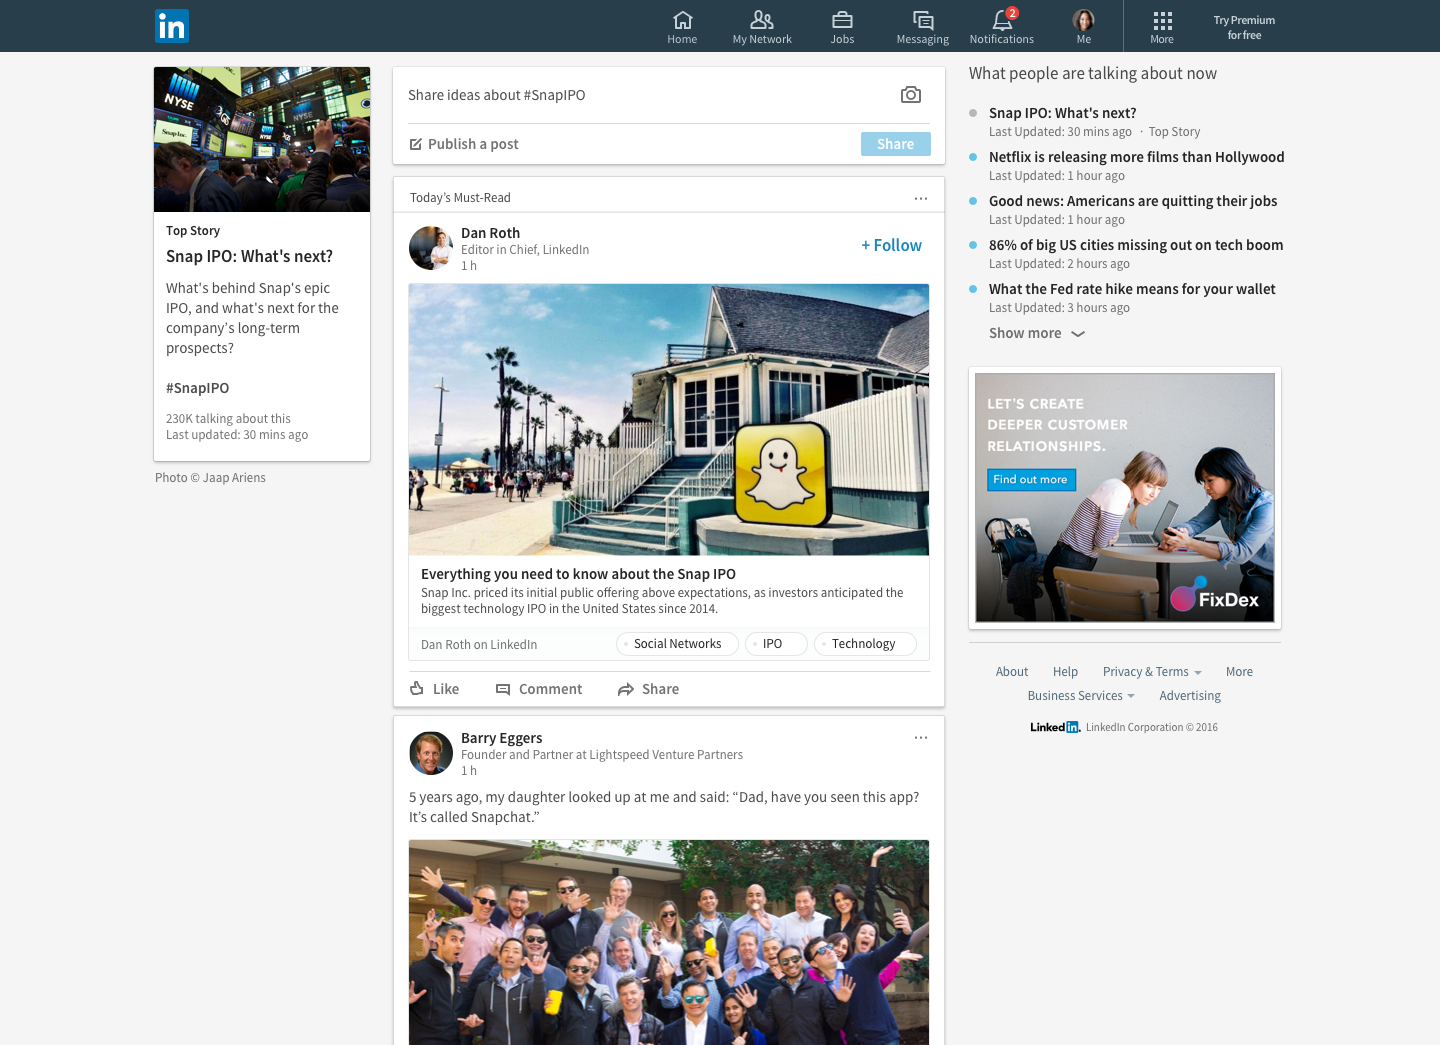 LinkedIn launches personalized news feeds with 'Trending Storylines'